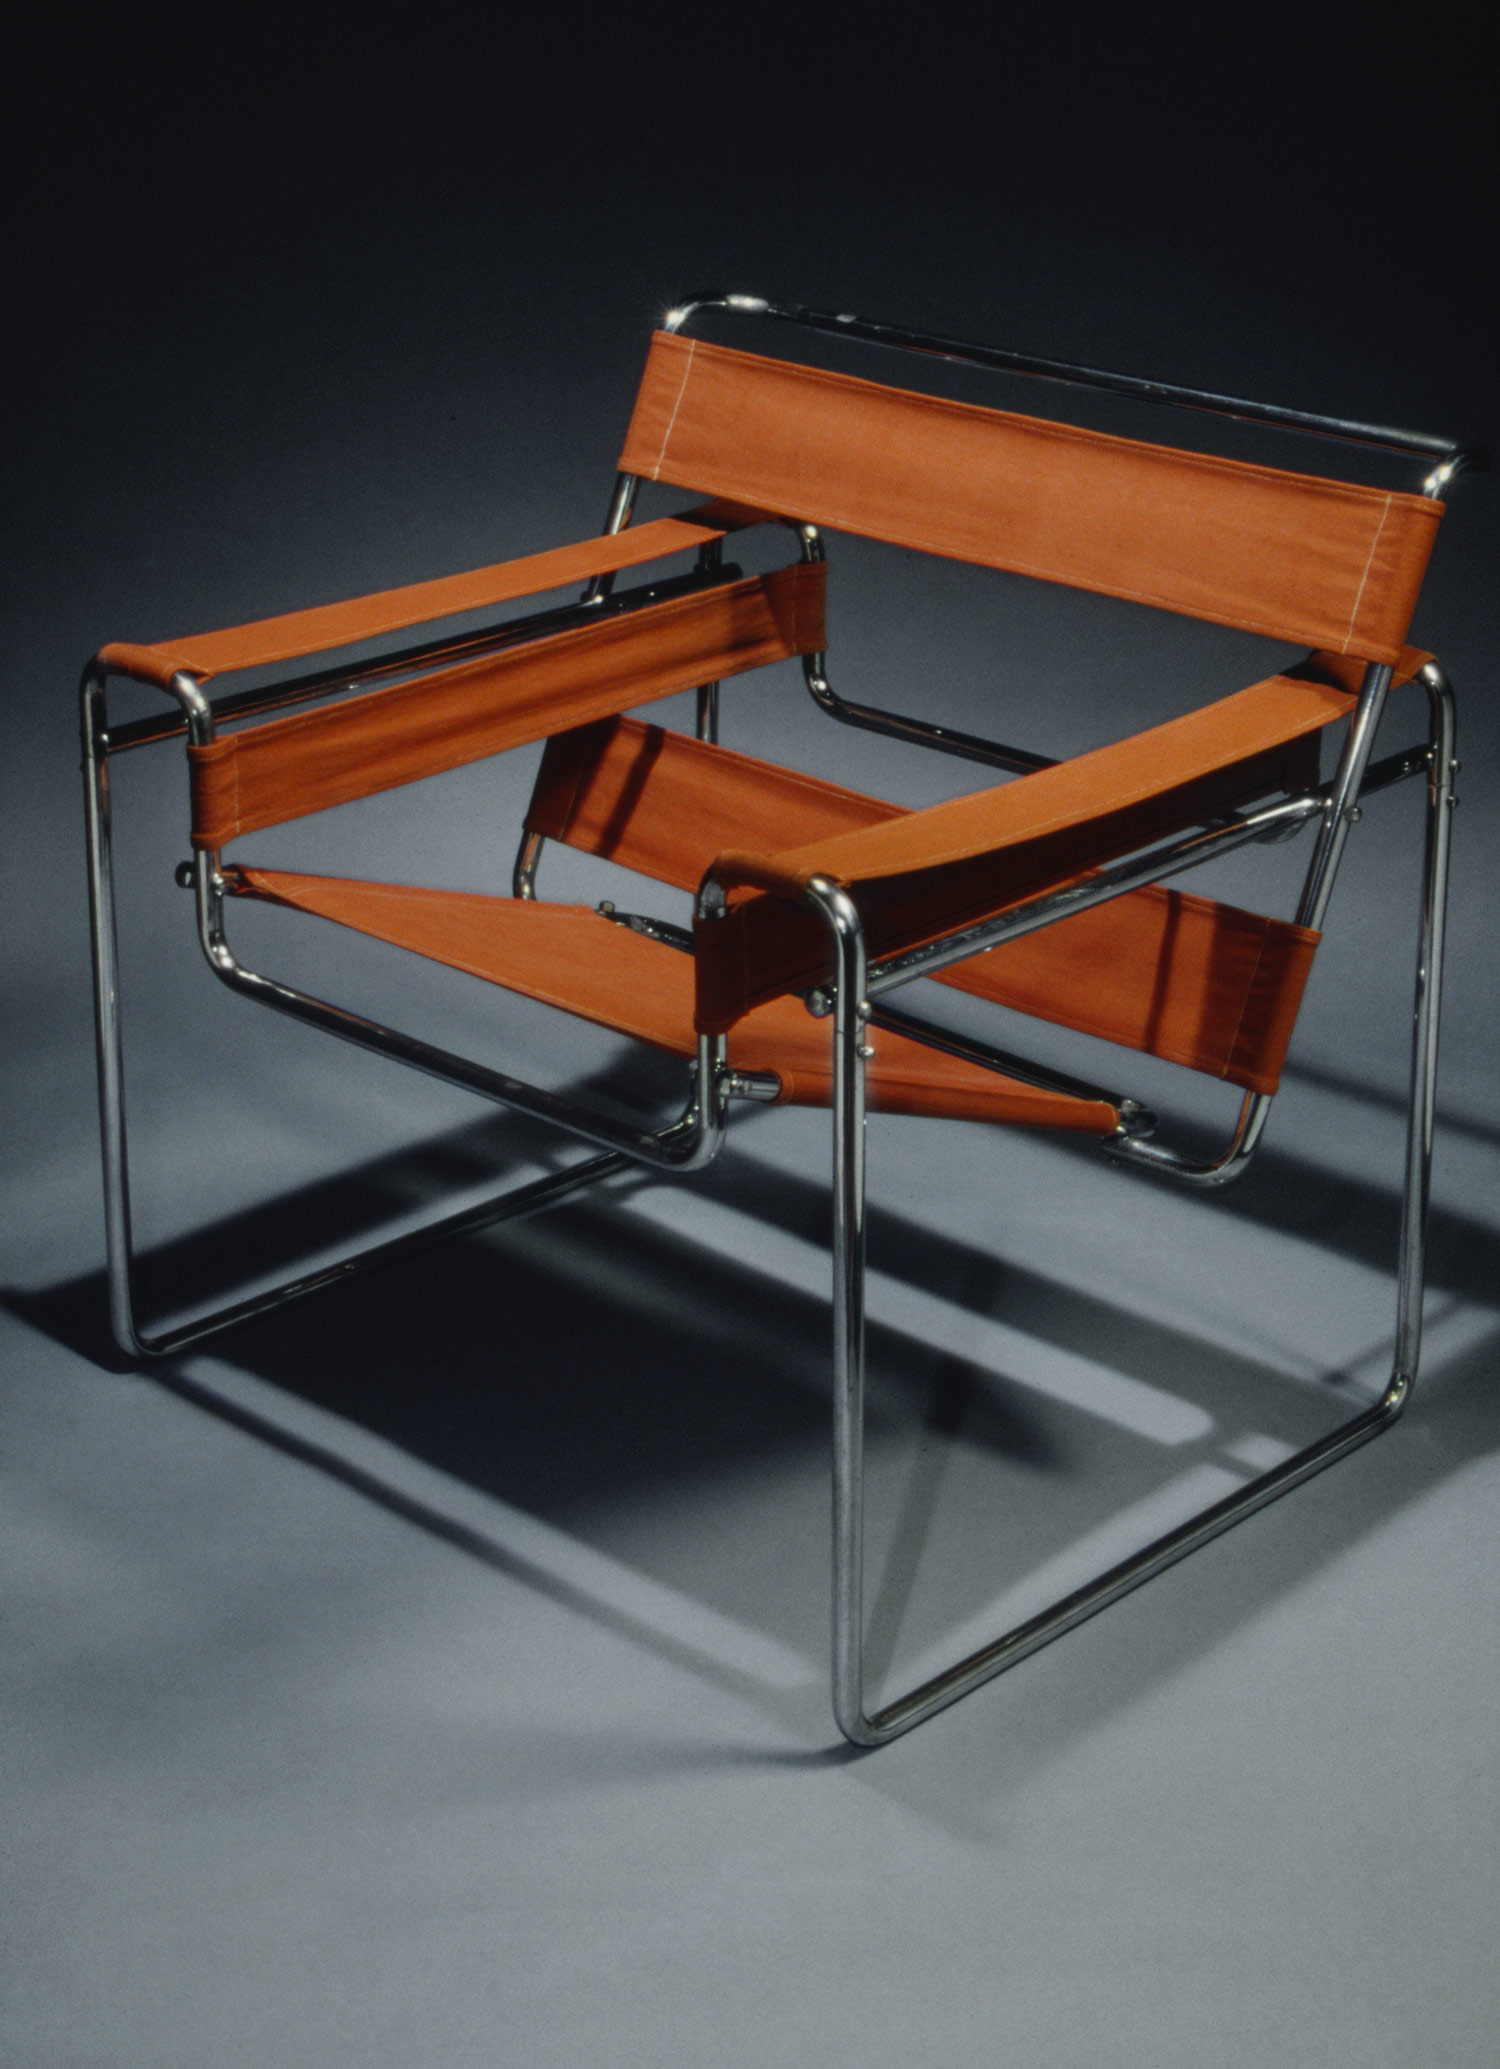 marcel breuer chair navy banquet covers about the timeline metpublications